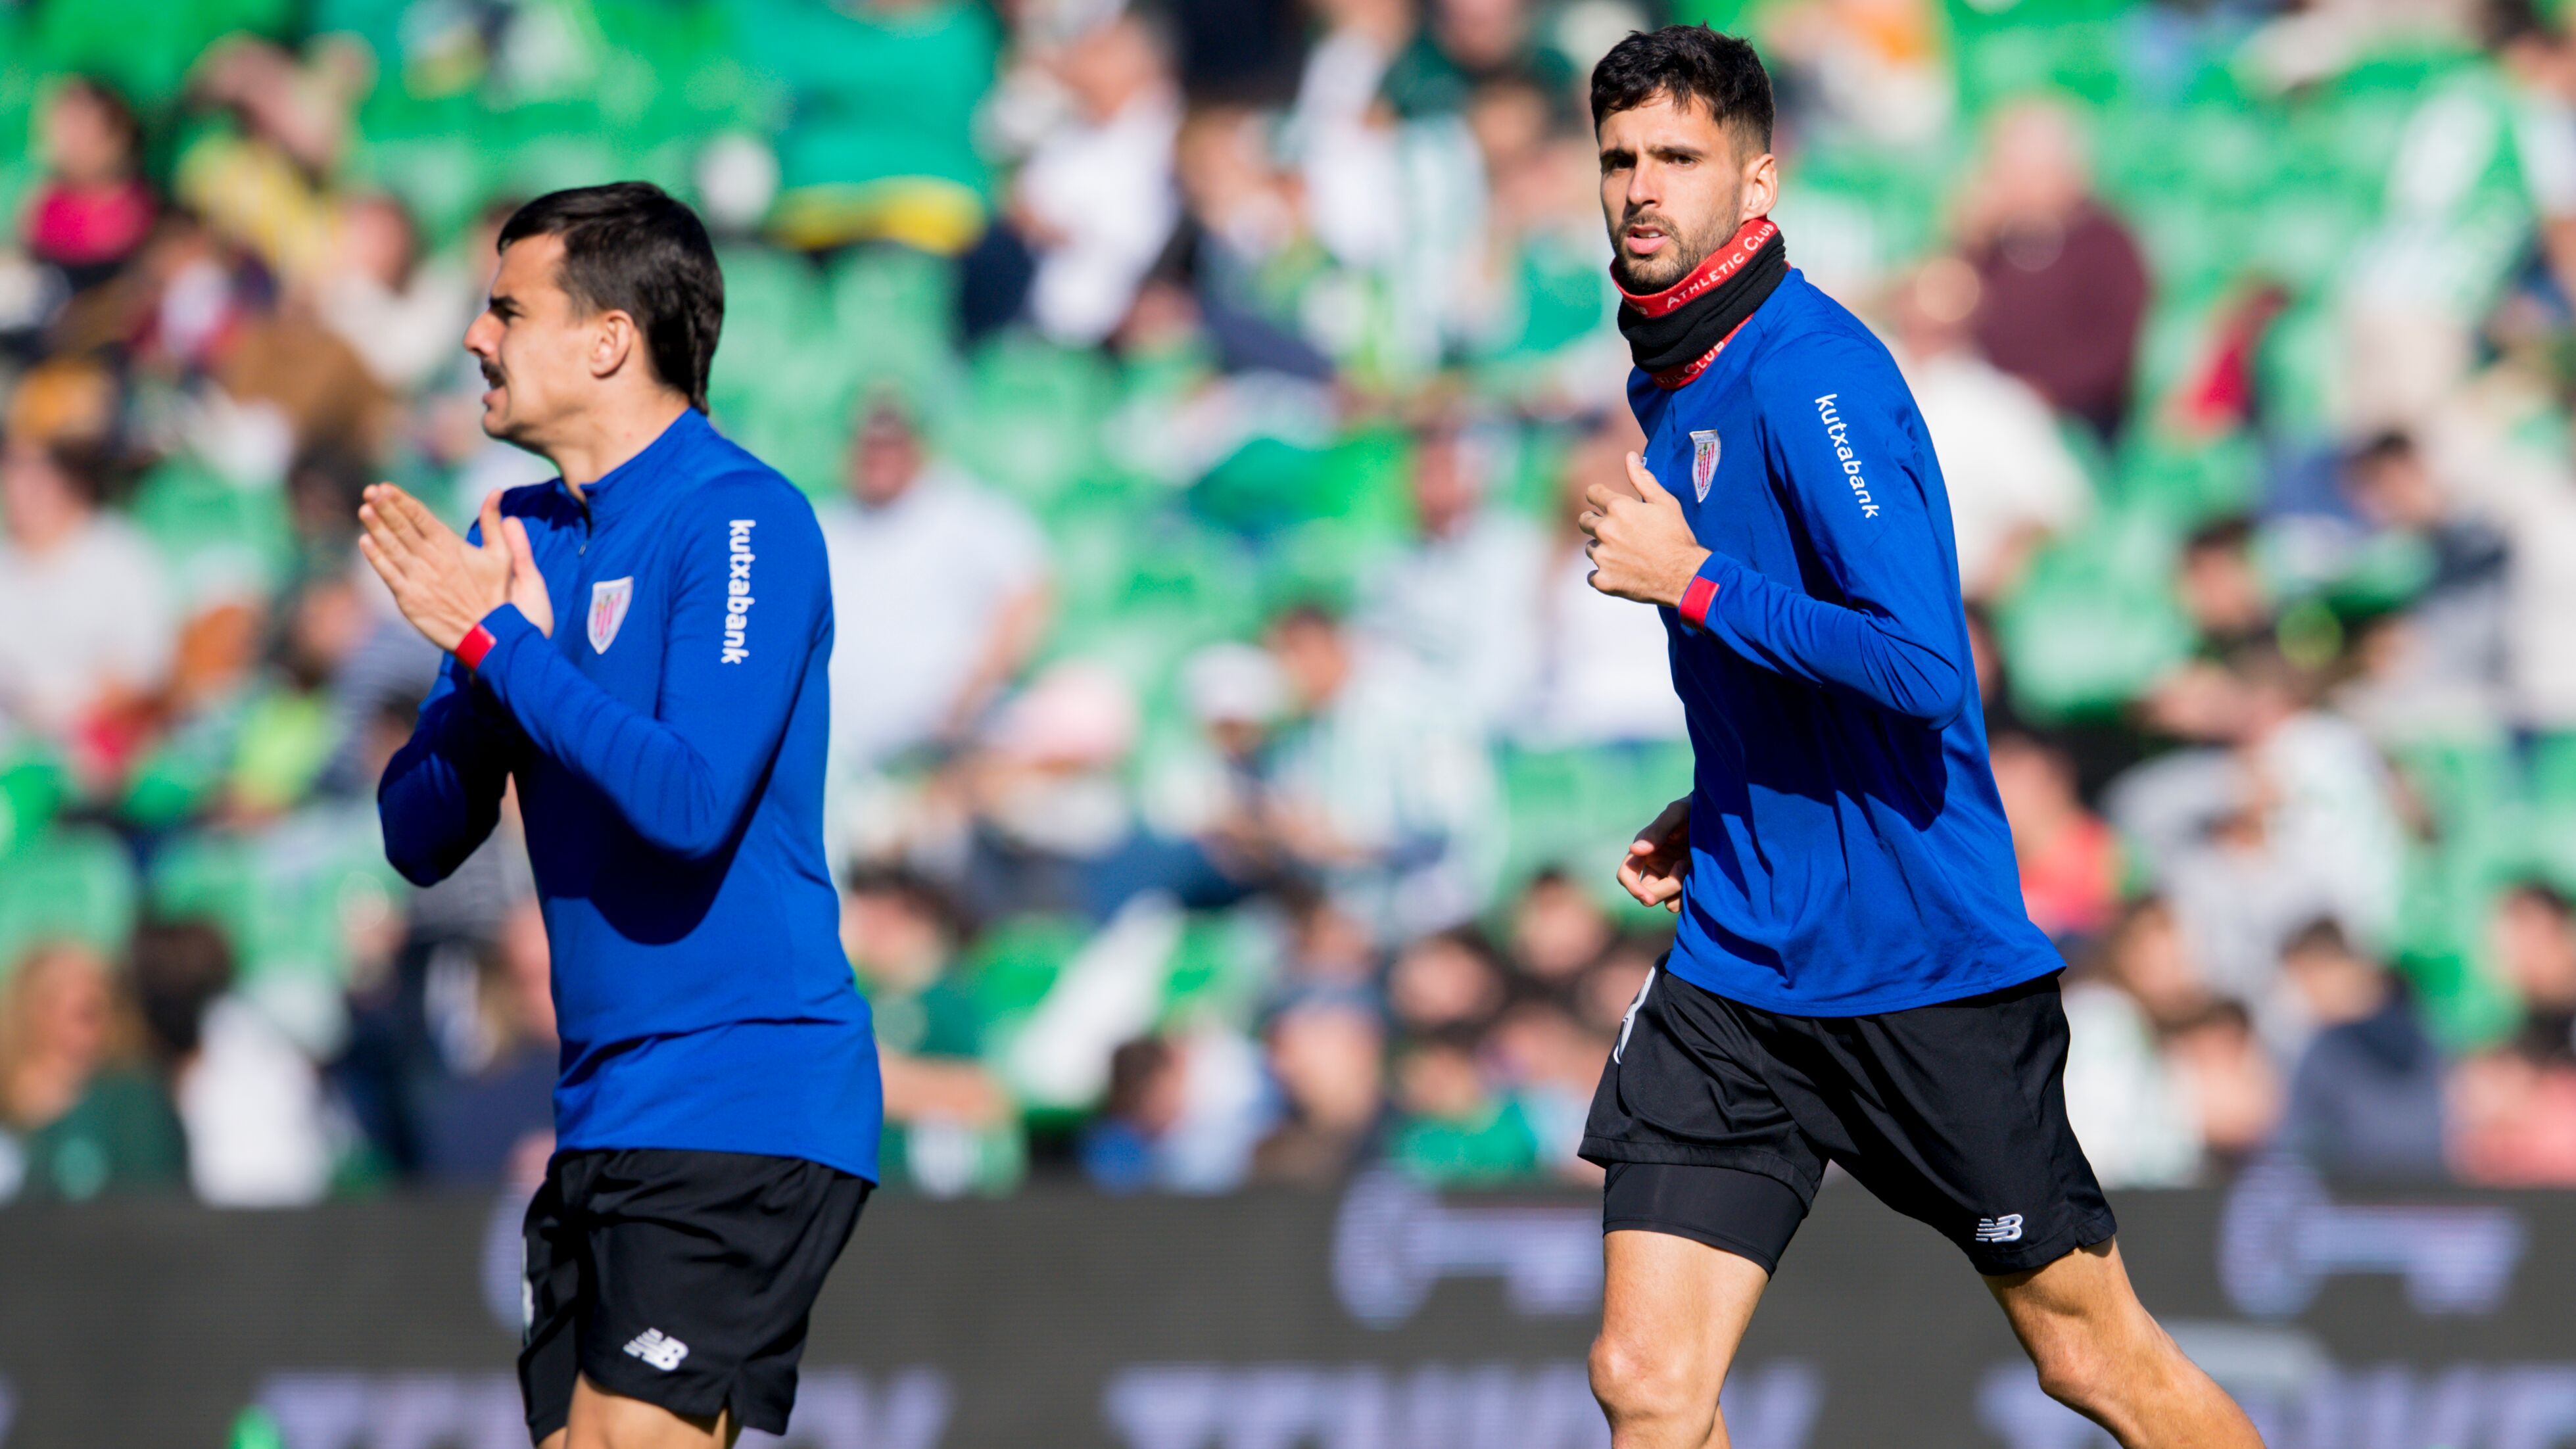 22 players have been starters for Athletic Club